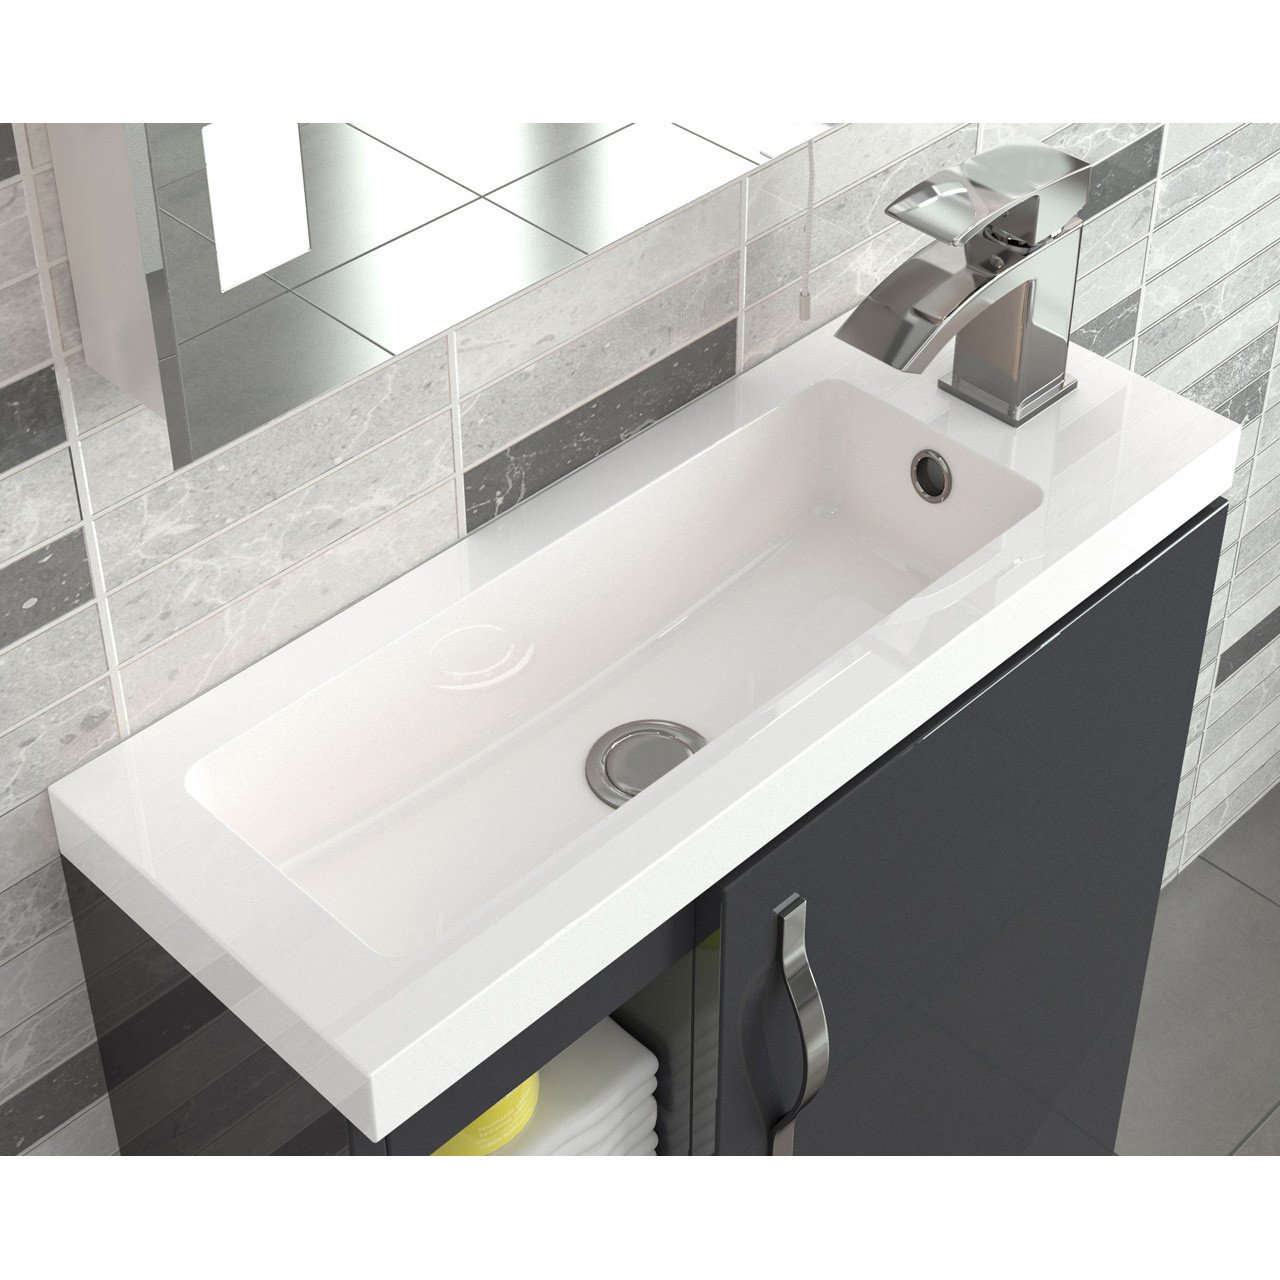 Hudson Reed Apollo Compact Grey Gloss Floor Standing 600mm Cabinet & Basin - FMA426C & PMB303